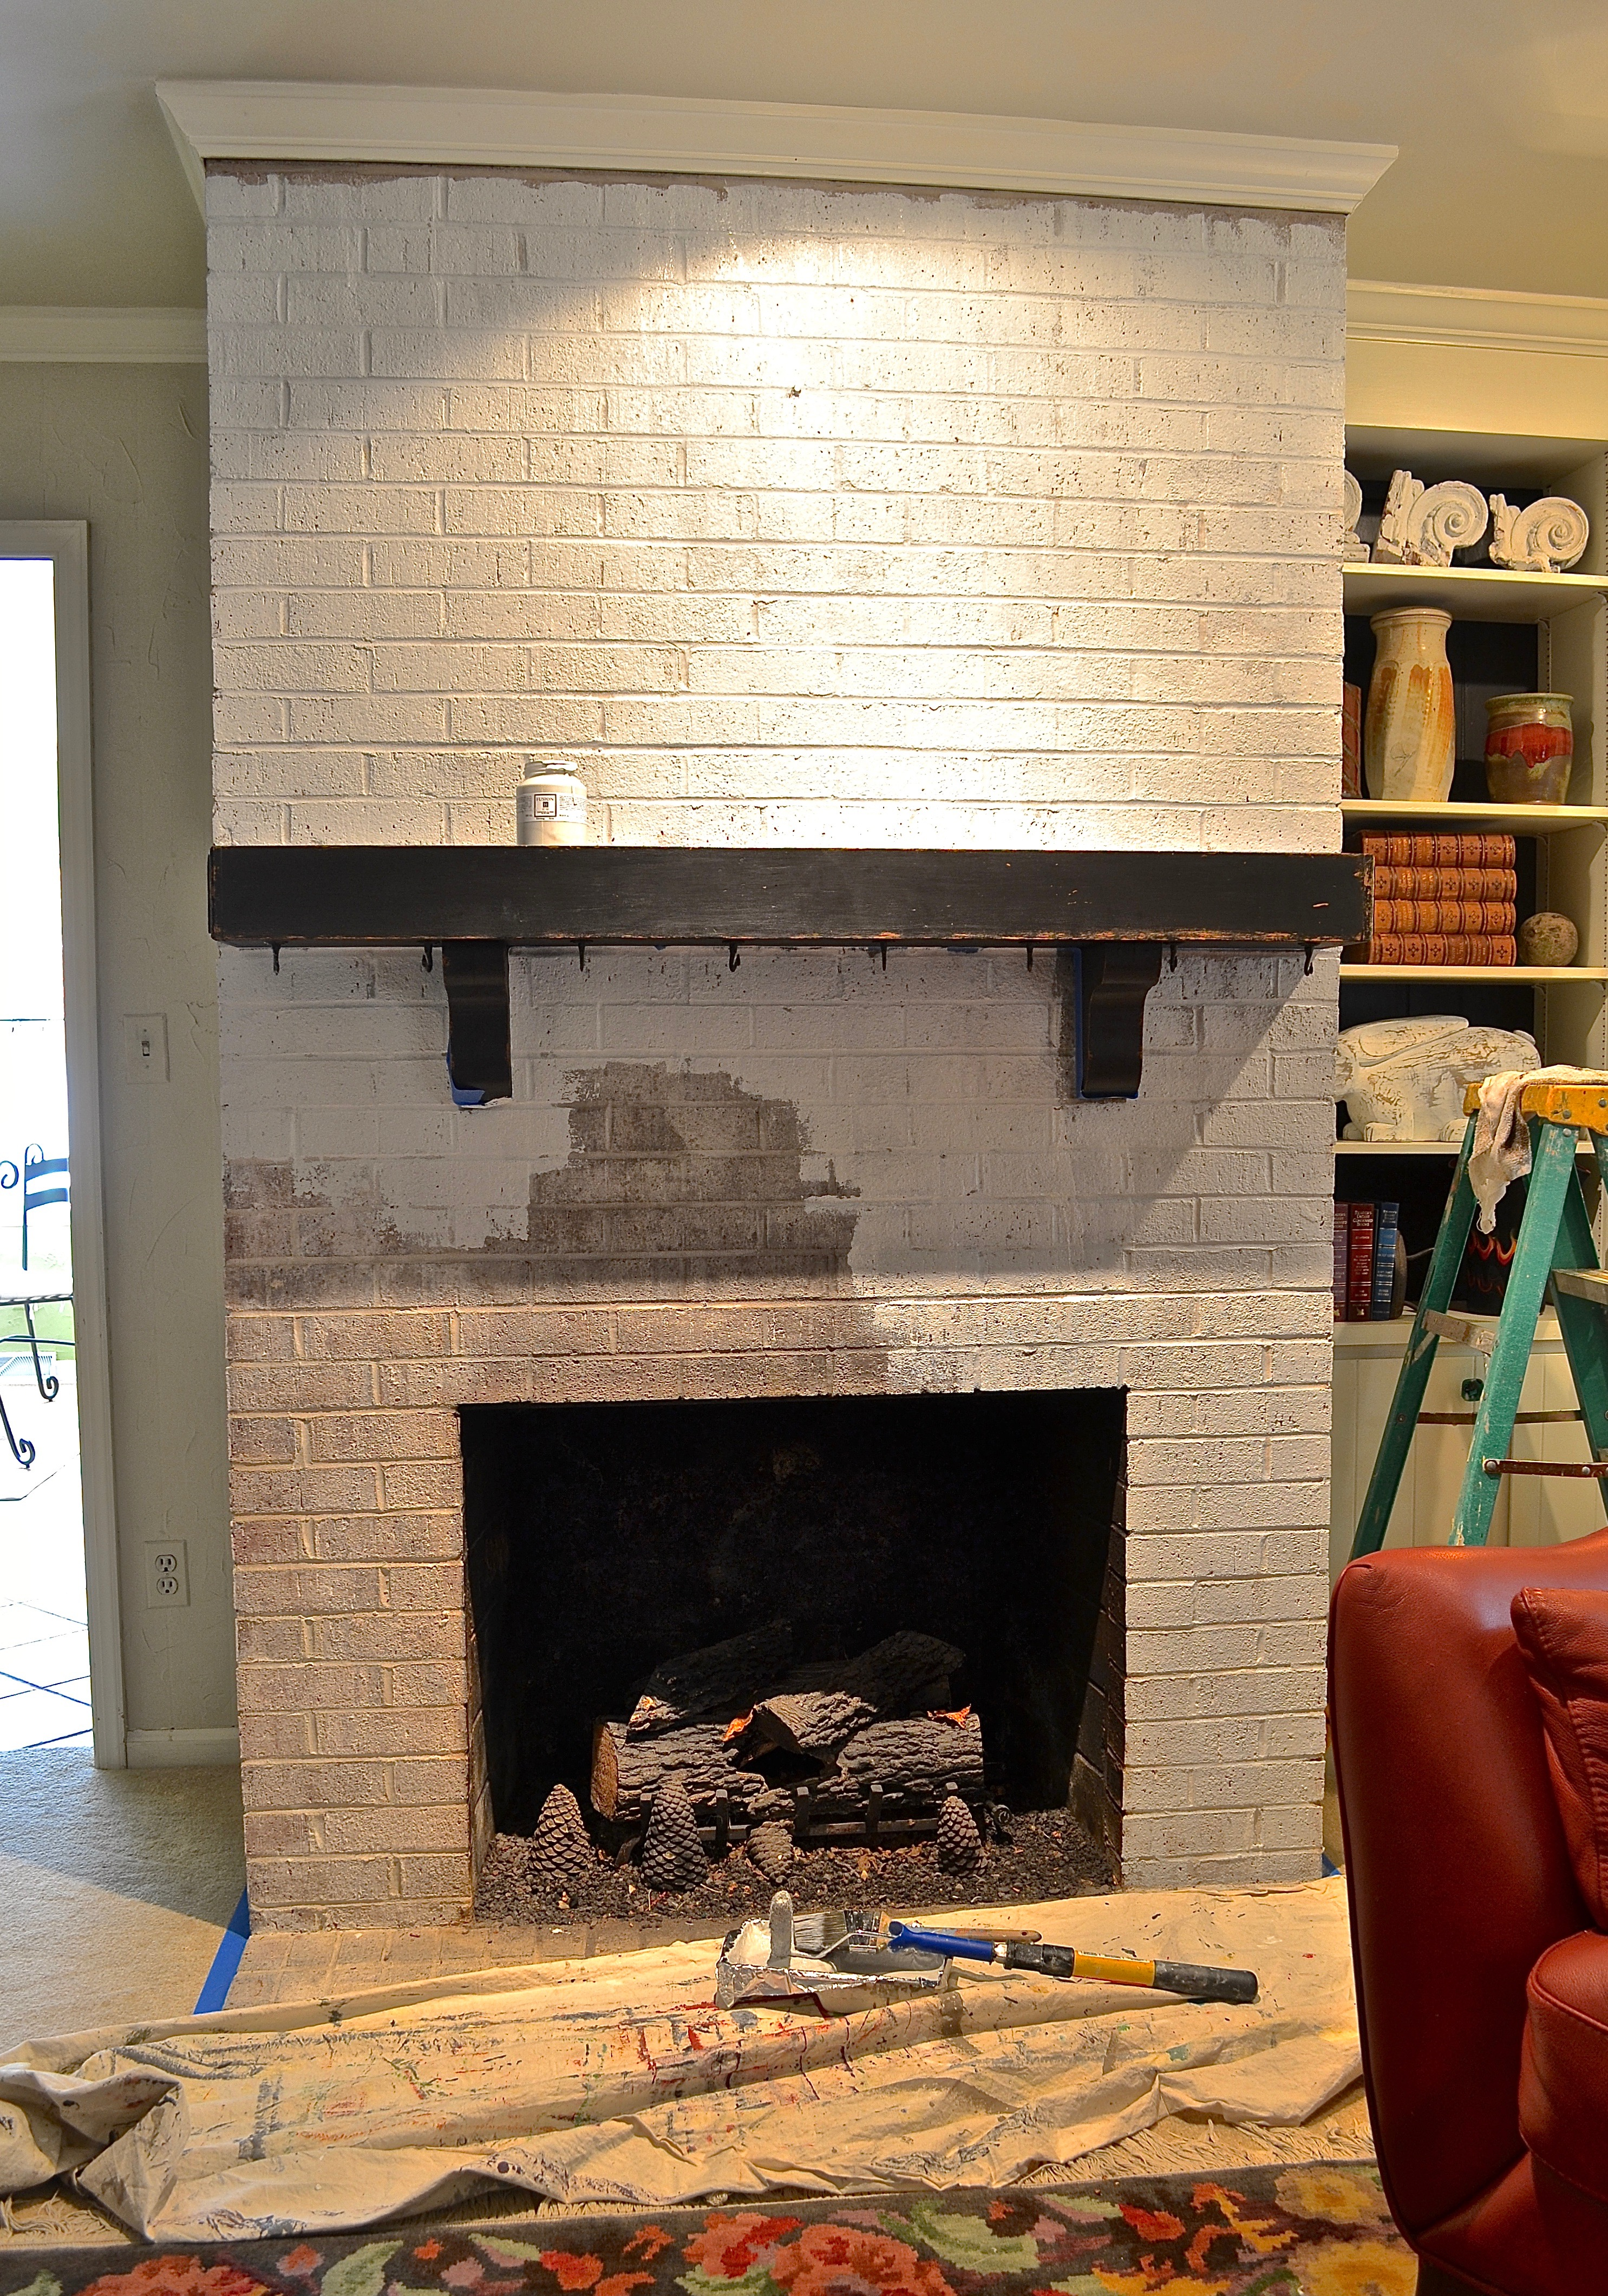 My Patch Of Blue Sky   How To Paint A Brick Fireplace And Mantel With Fusion Mineral Paint